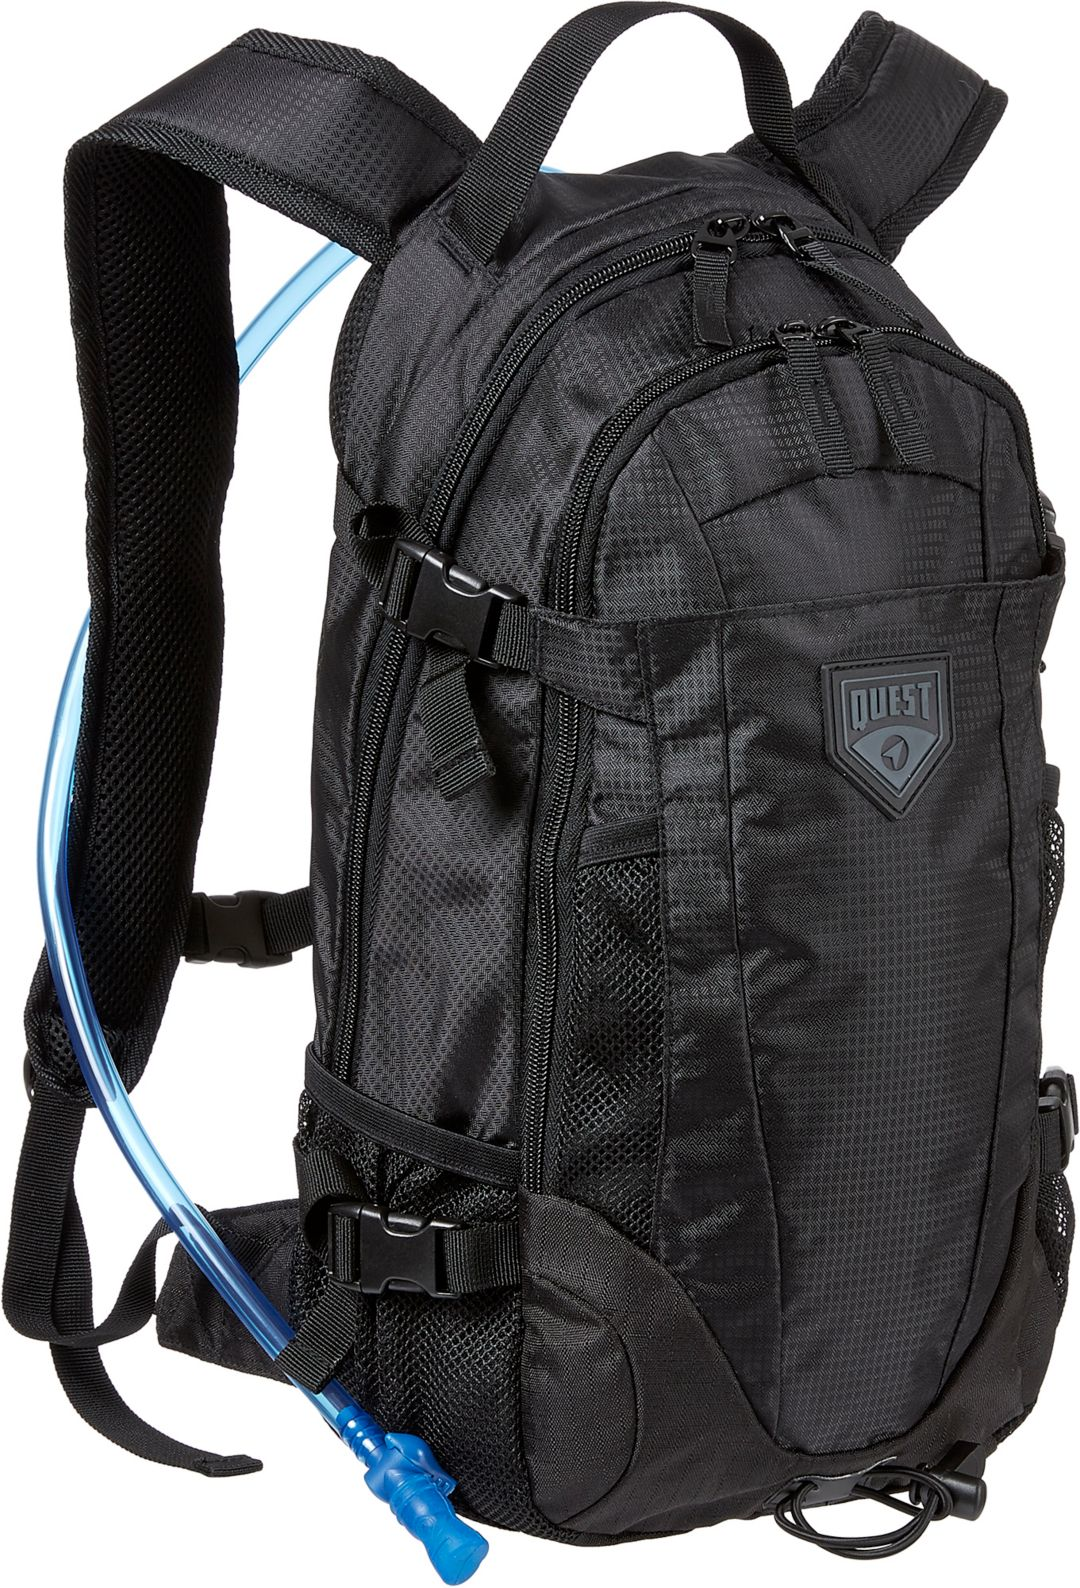 876b5e1a1f Quest 2L Hydration Pack | DICK'S Sporting Goods